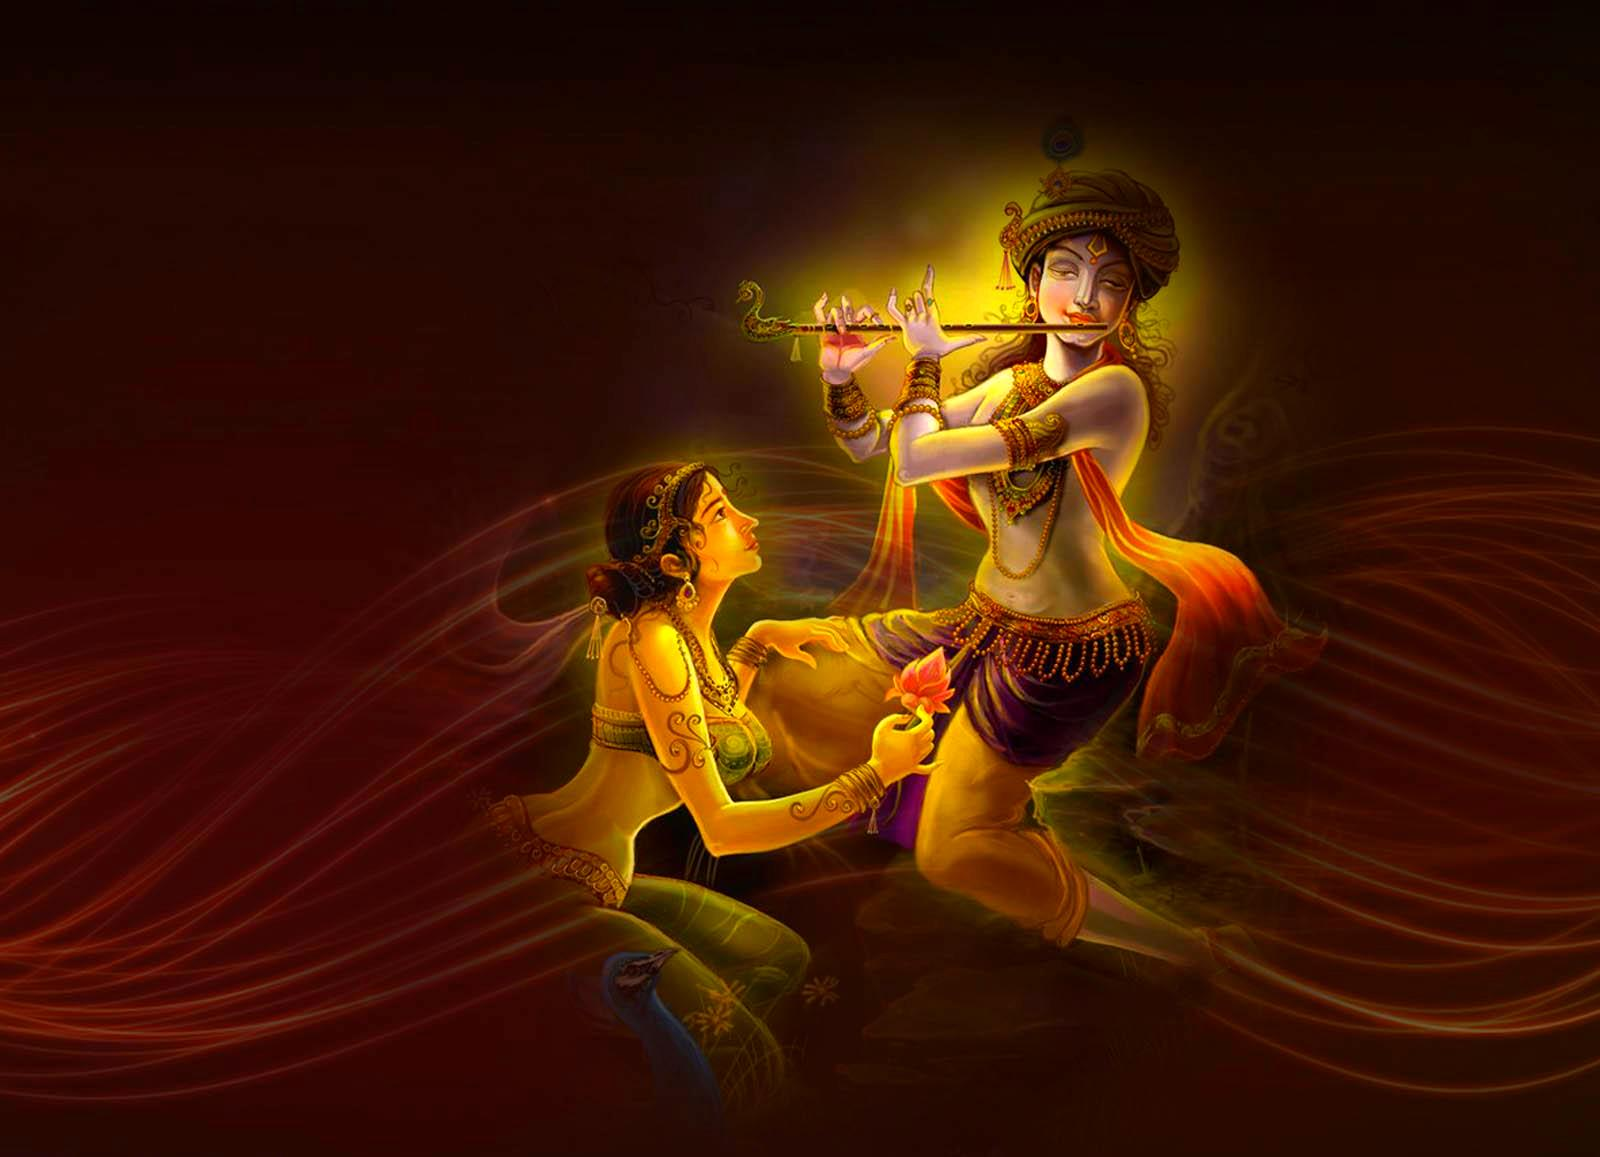 Lord Krishna Wallpapers Hd Wallpapersafari